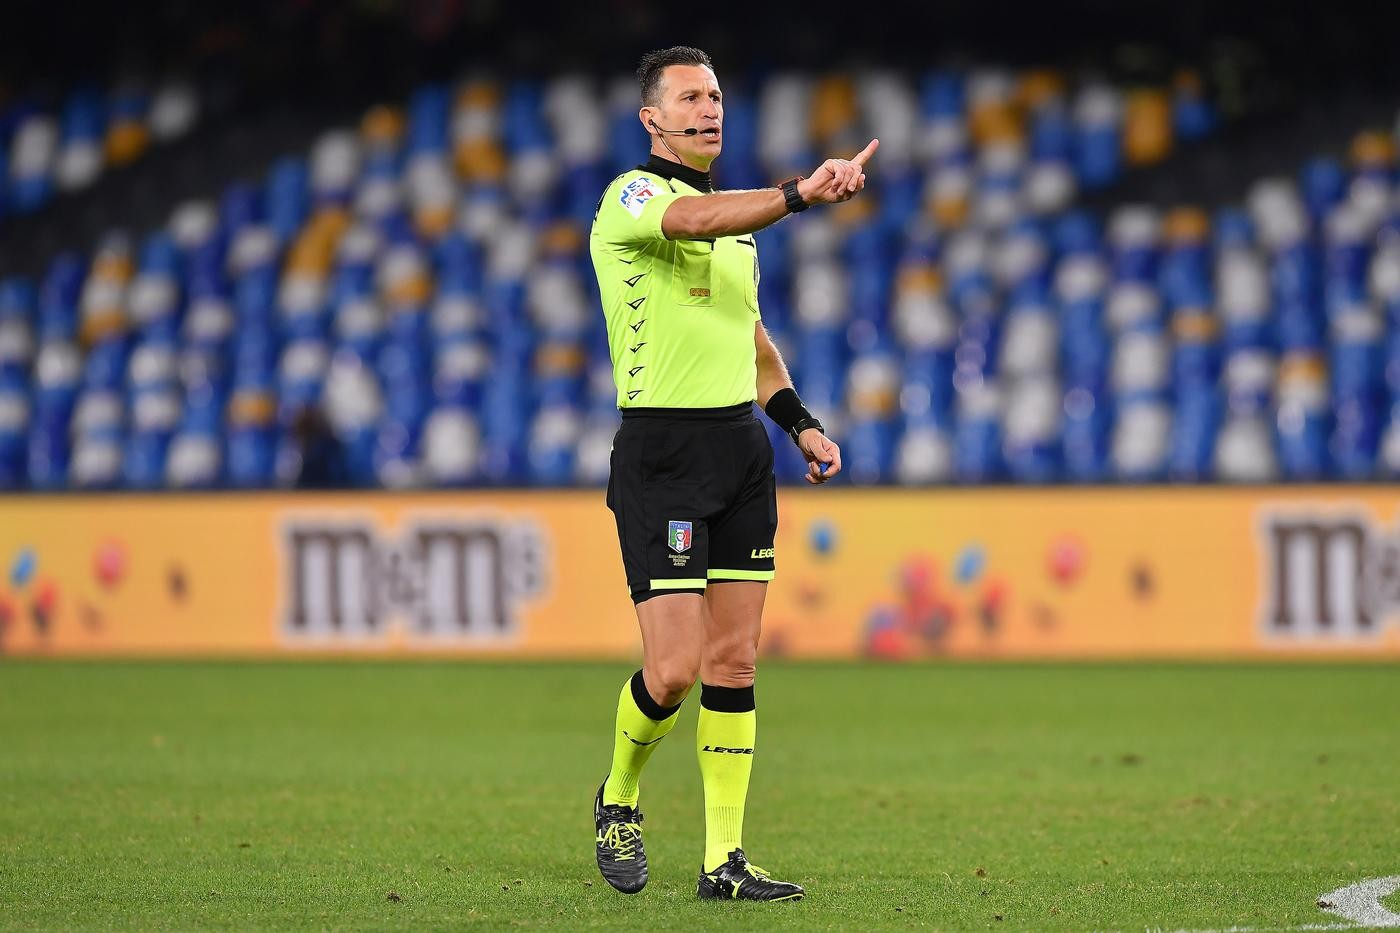 SERIE A TIM, THE REFEREES FOR THE 4TH ROUND